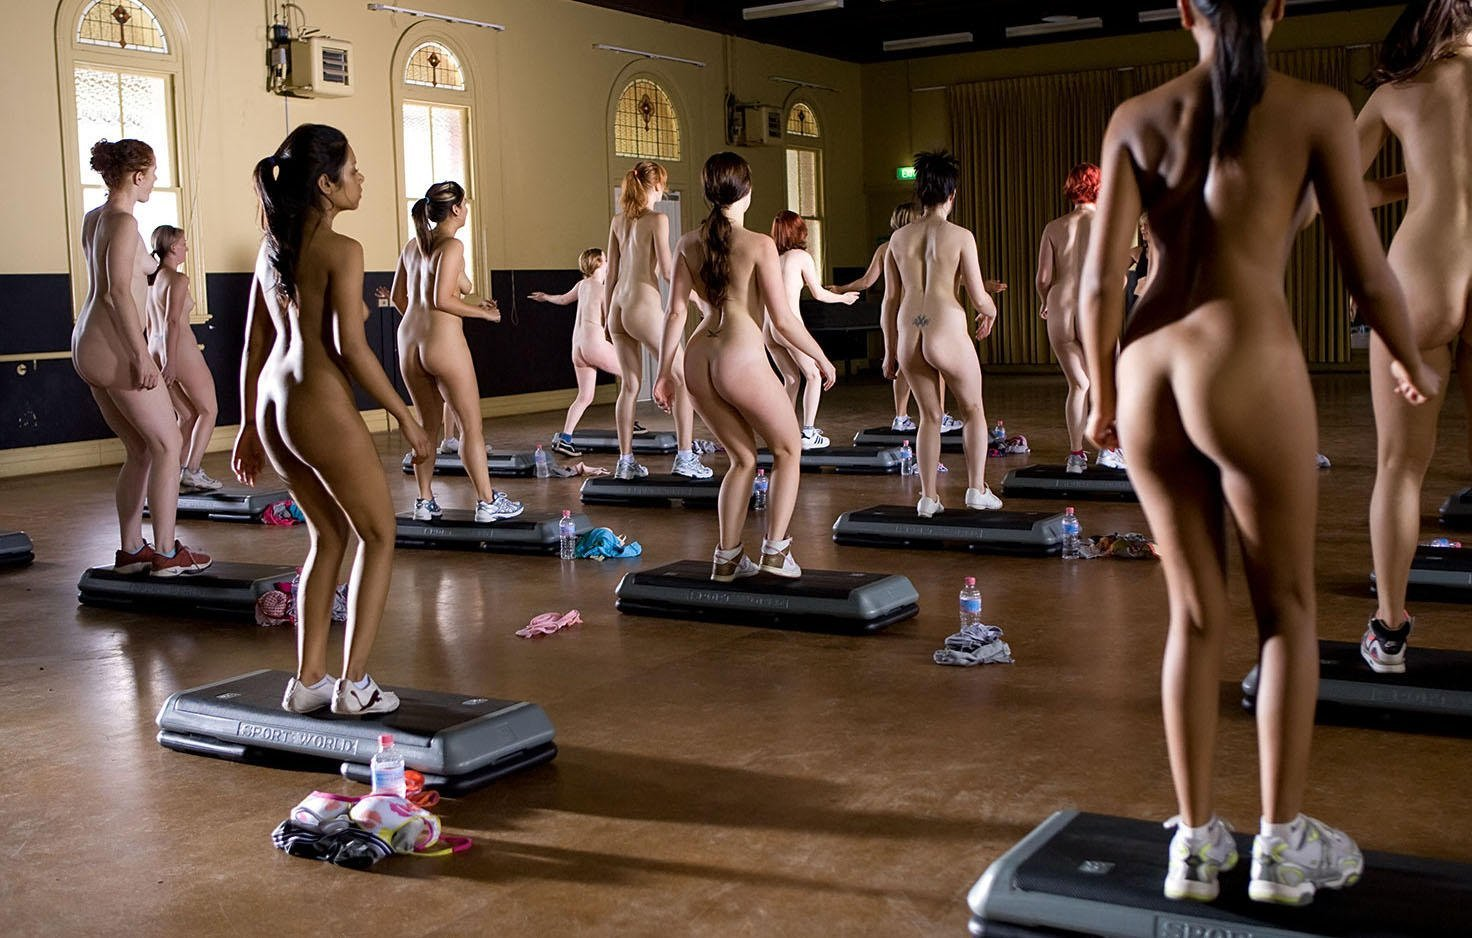 Exercise curves nude pics and vids